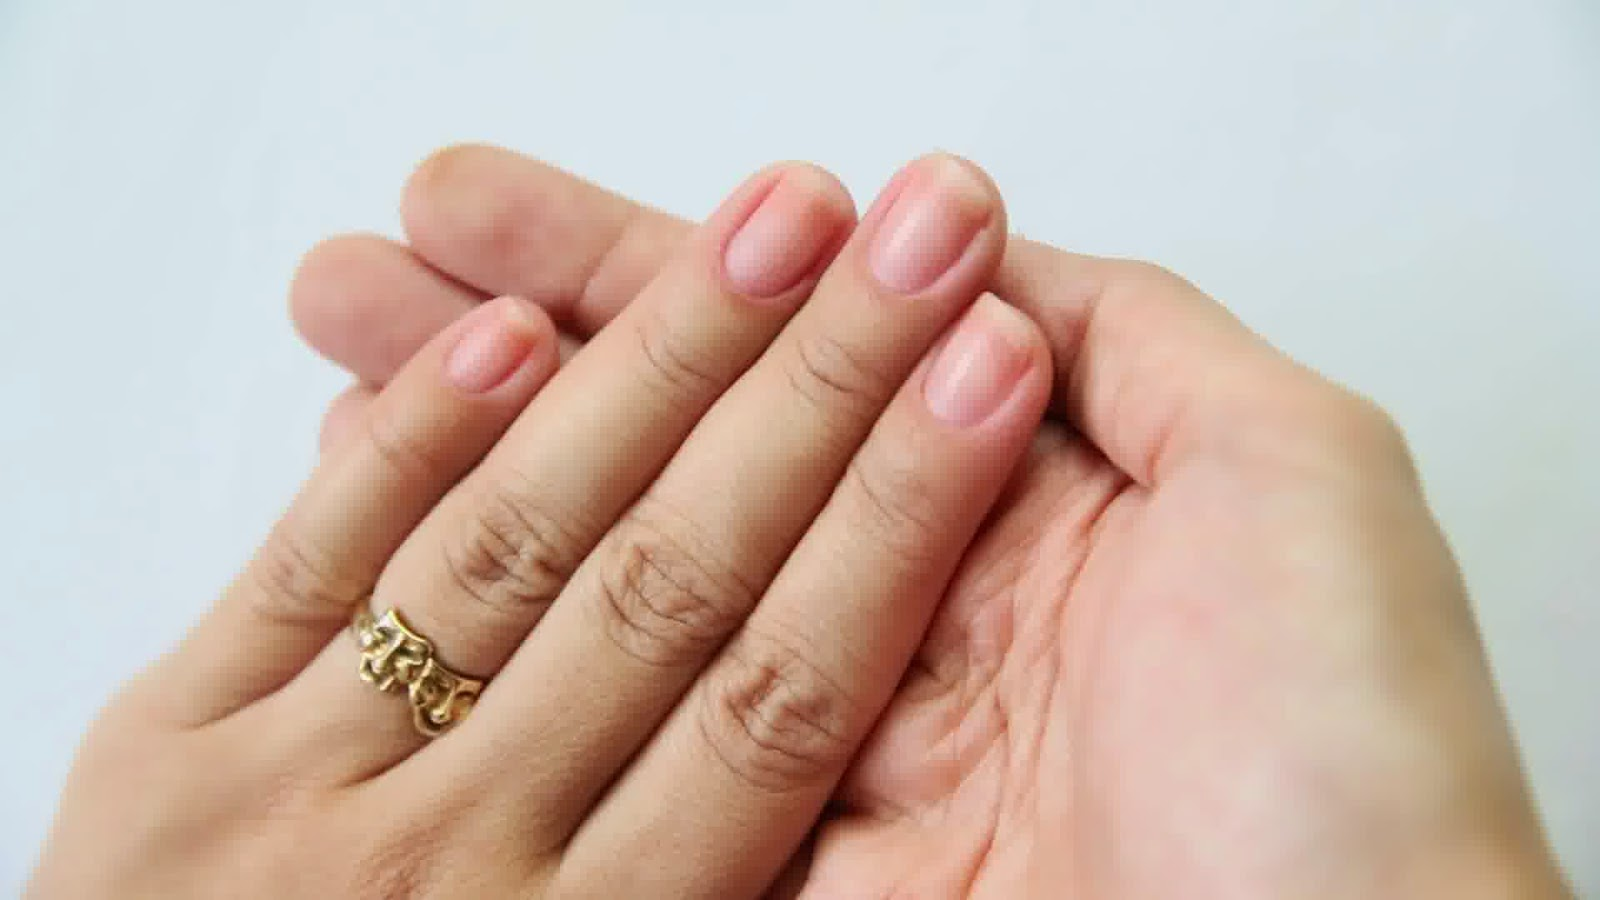 8 Health WARNINGS Your Fingernails May Be Sending